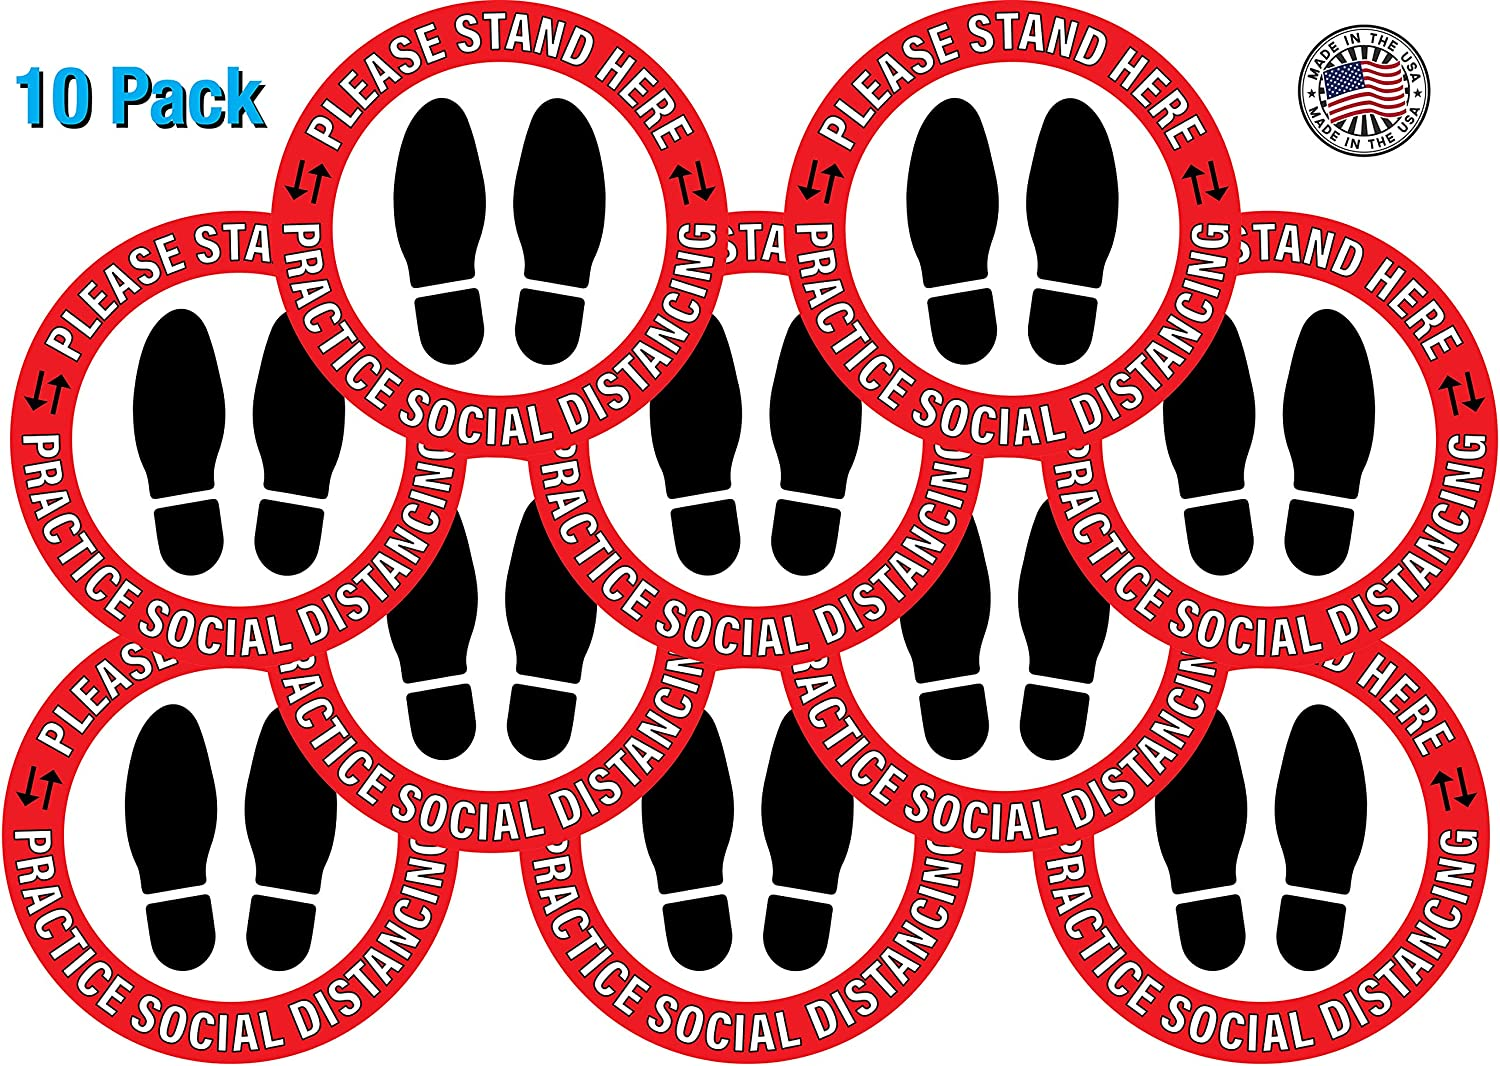 Easy Installation Round Shape Red Laminated Removable Adhesive Vinyl Made in USA Social Distancing Floor Decal Stickers-10 Pack 12 inch Foot Prints